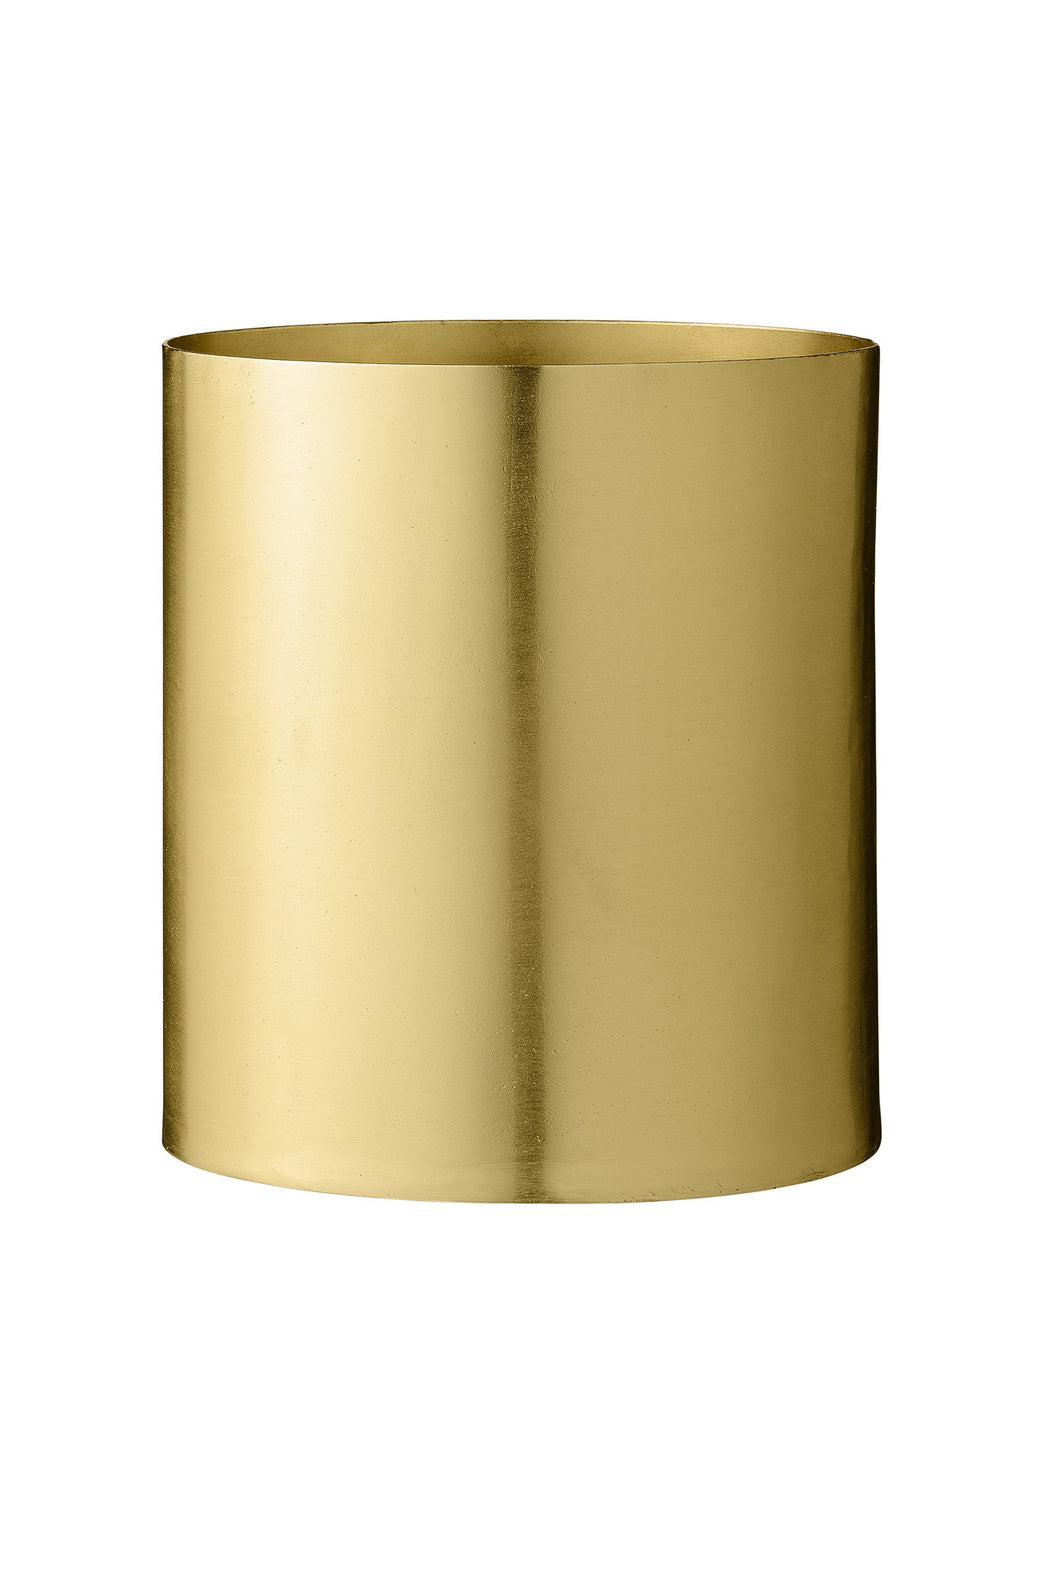 Golden Flowerpot, Decor, Bloomingville - 3LittlePicks